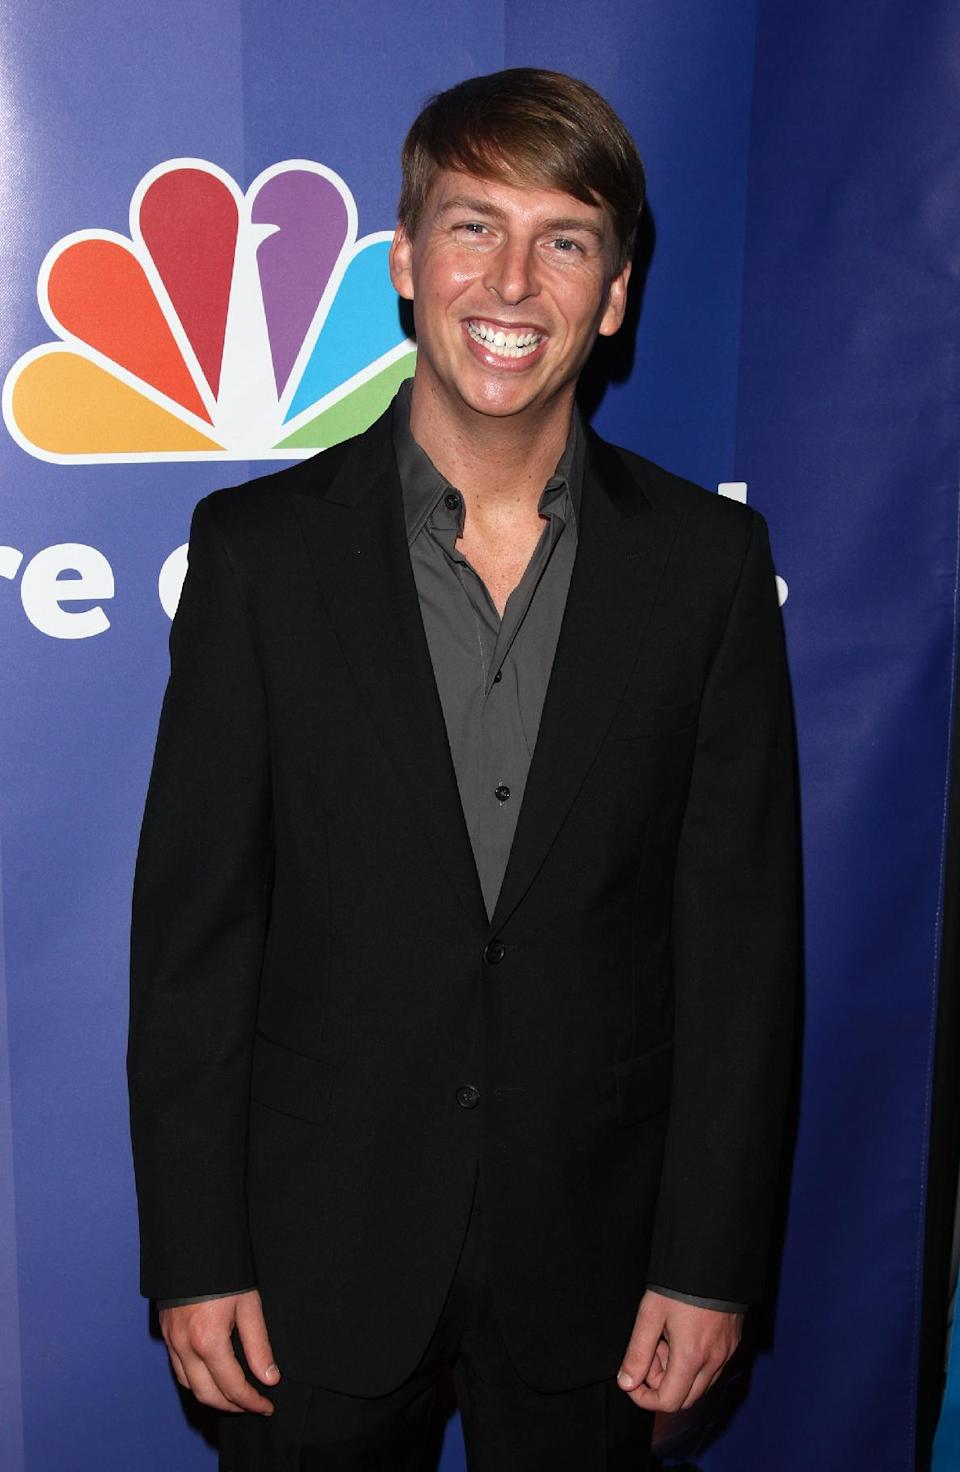 "FILE - In this May 17, 2010 file photo, actor Jack McBrayer attends the NBC Universal's Upfront presentation in New York. McBrayer stars in the animated film, ""Wreck-It-Ralph,"" which opened on Nov. 2, 2012.   (AP Photo/Peter Kramer, File)"